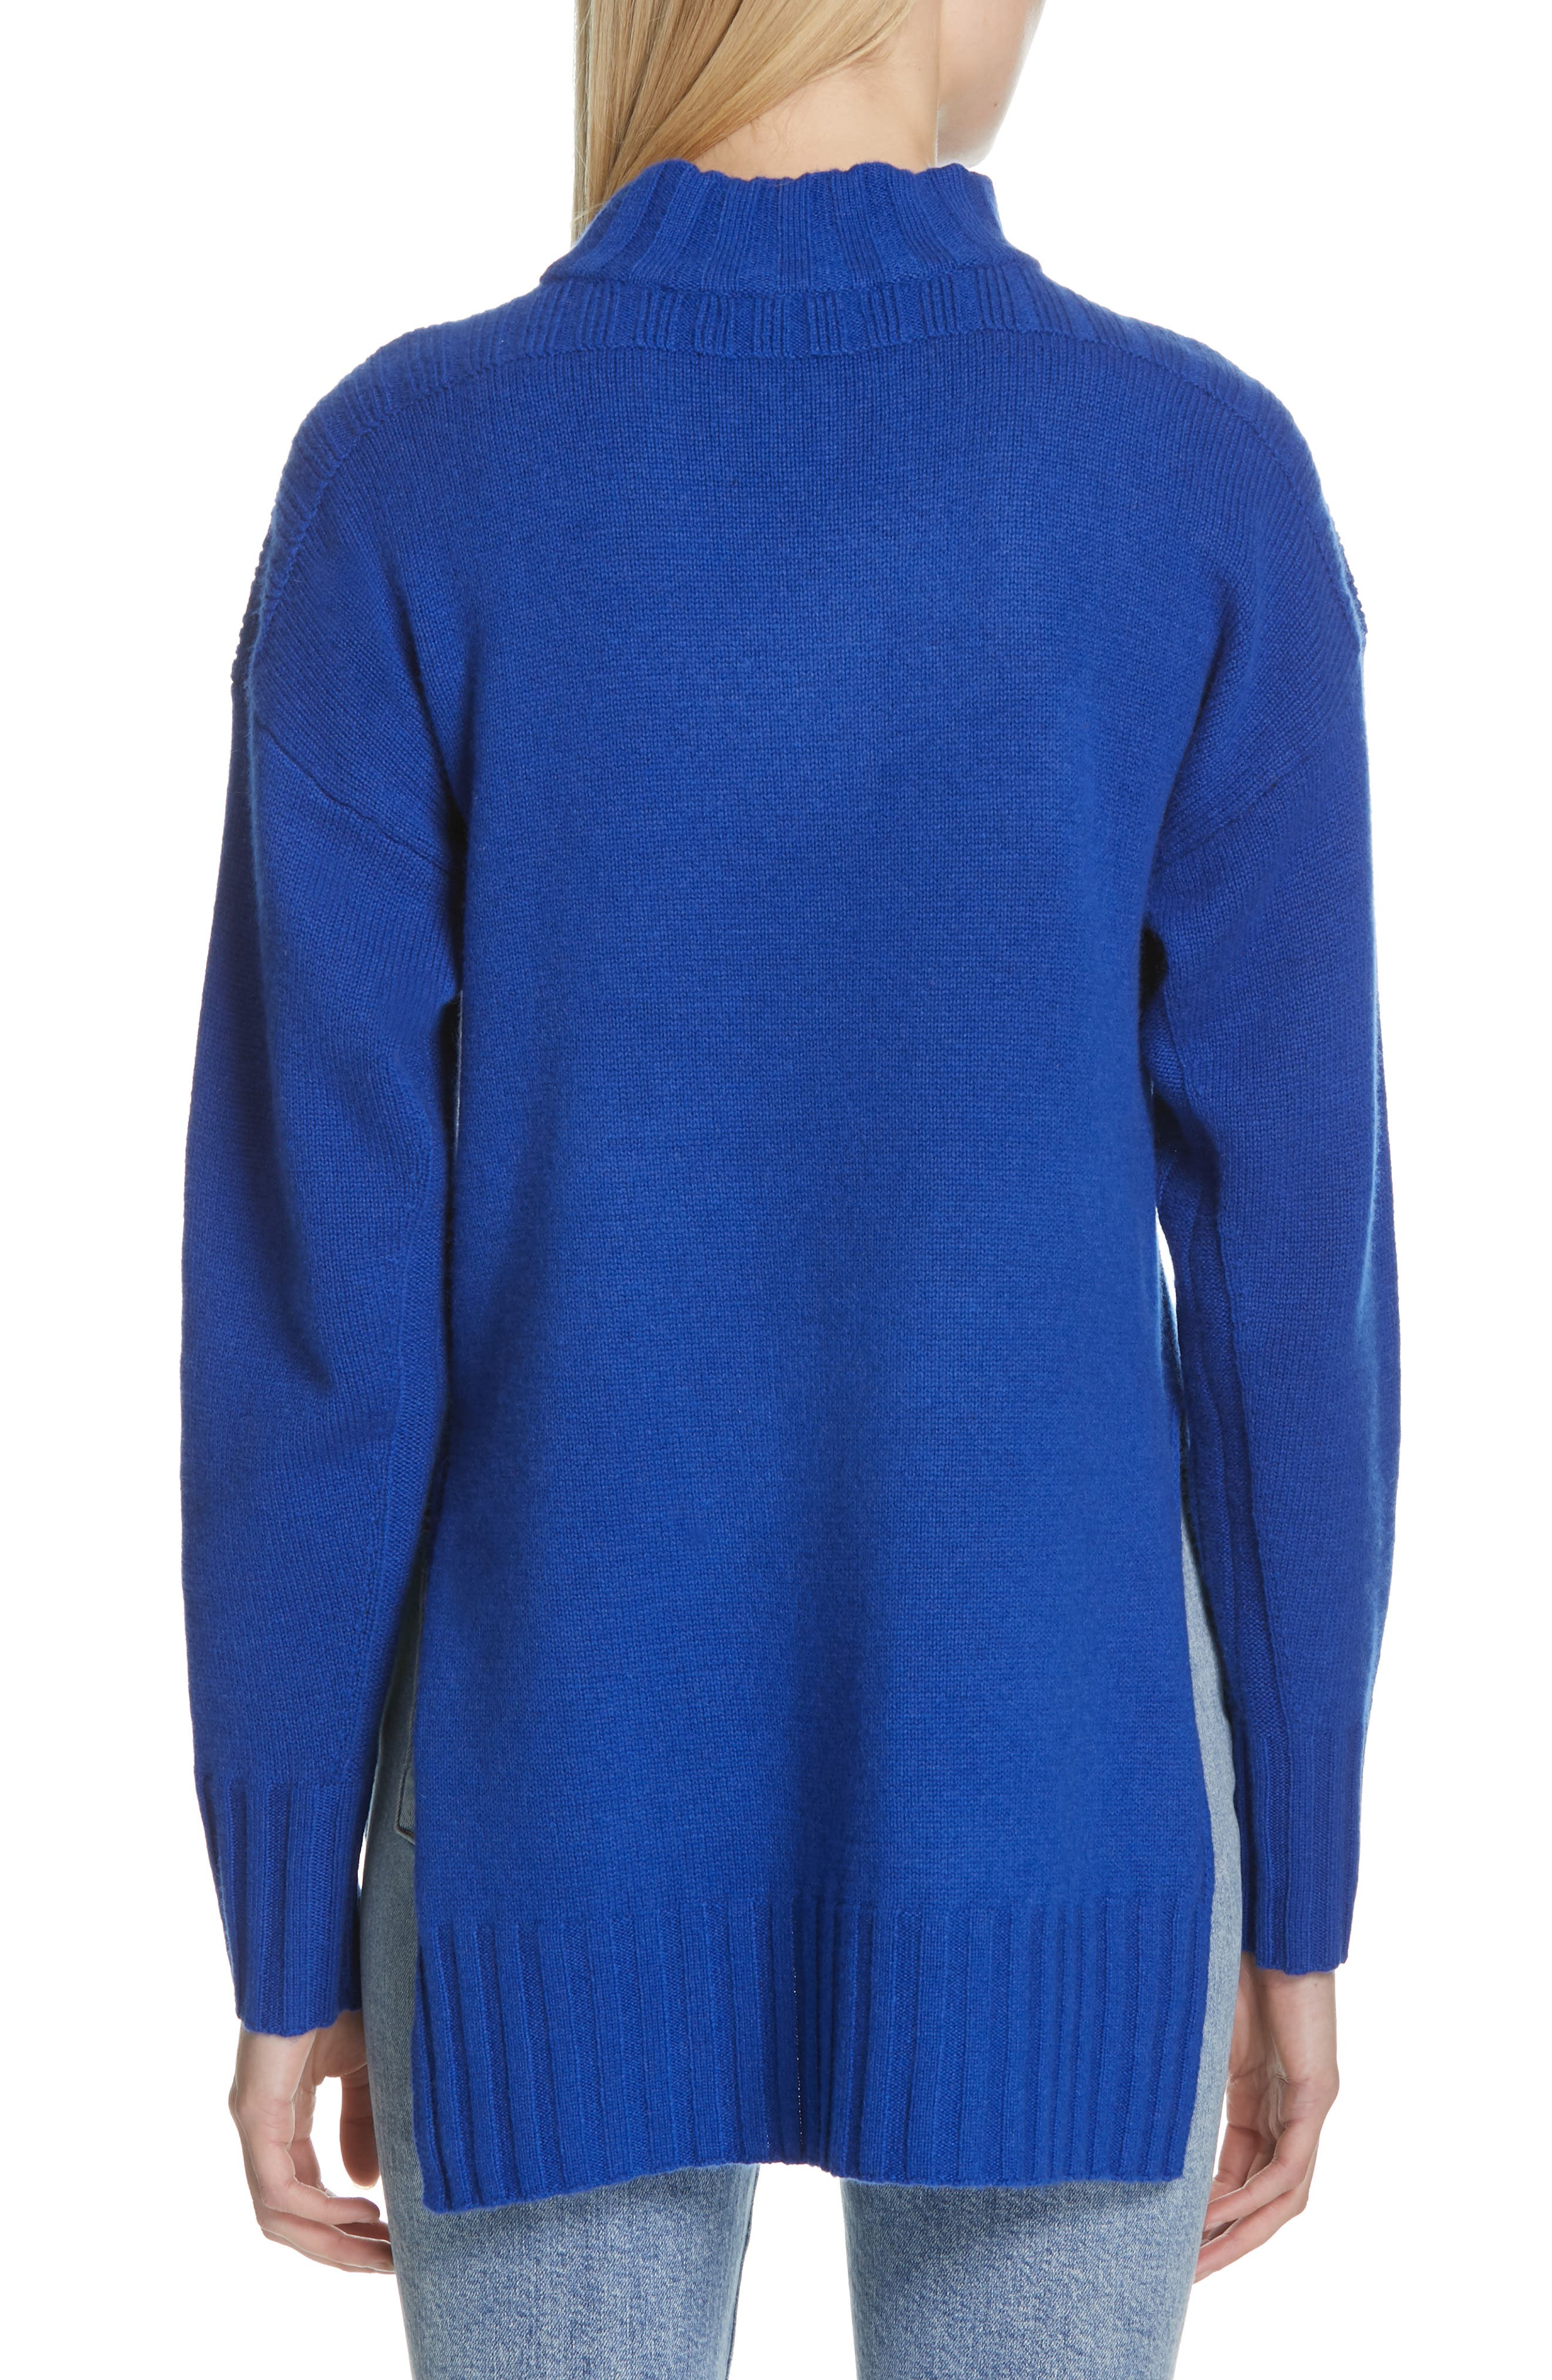 Stratford Wool & Cashmere Sweater,                             Alternate thumbnail 2, color,                             HYPER BLUE